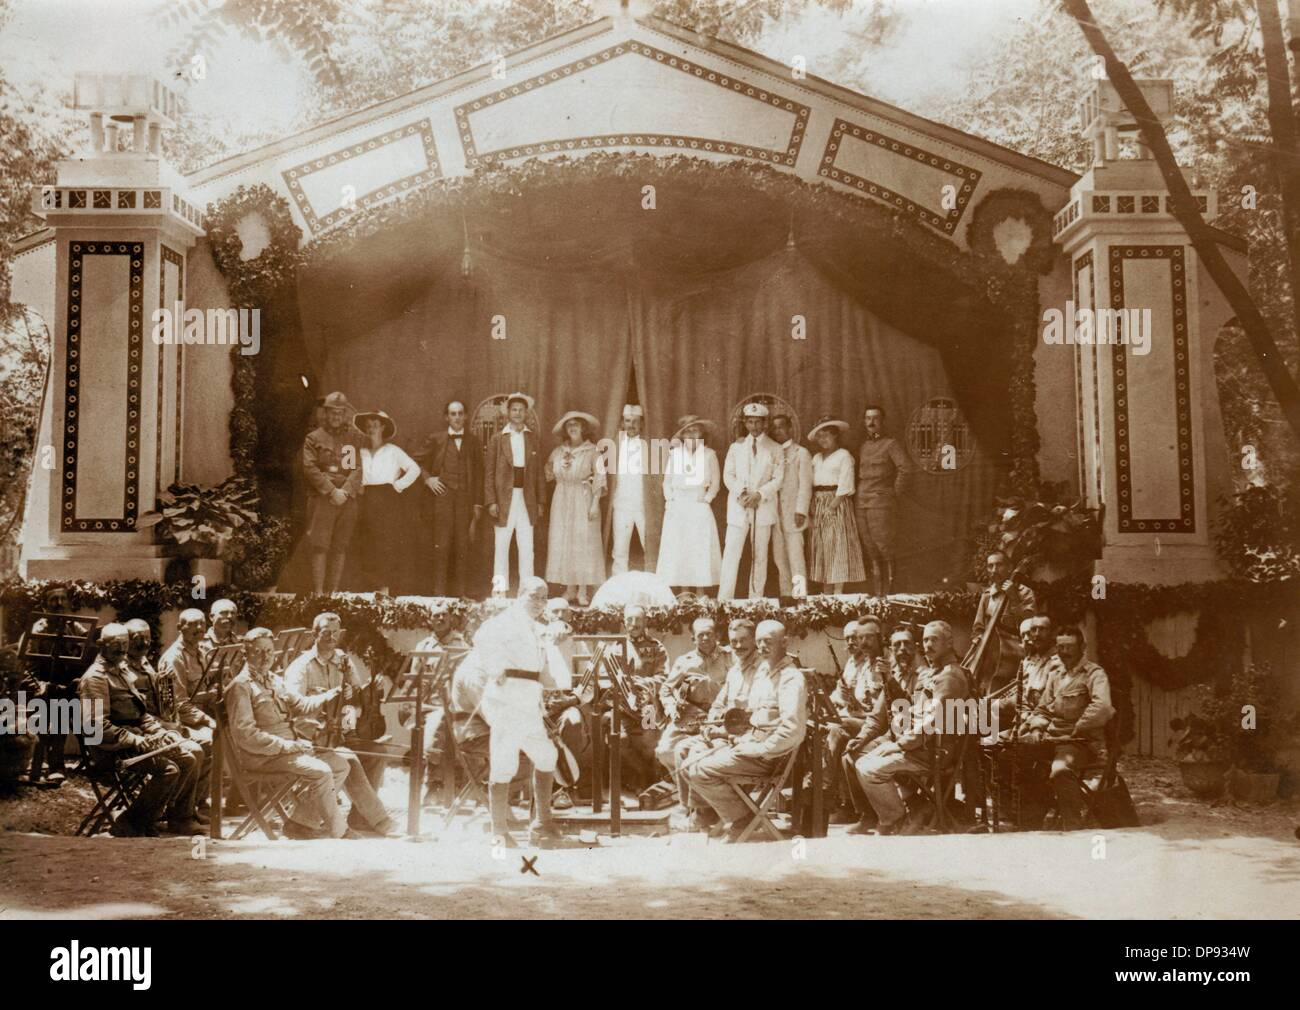 The ensemble of the front theatre 'Lovcen' with its military and creative manager Lieutenant Dr. Krüger (x) in Shkoder- 'The theatre was built in one day', was written on the back of the image. Shkoder was occupied by the Austro-Hungarian army from 1916 to 1918 during World War I. Date unknown. Photo: Berliner Verlag/Archiv - Stock Image